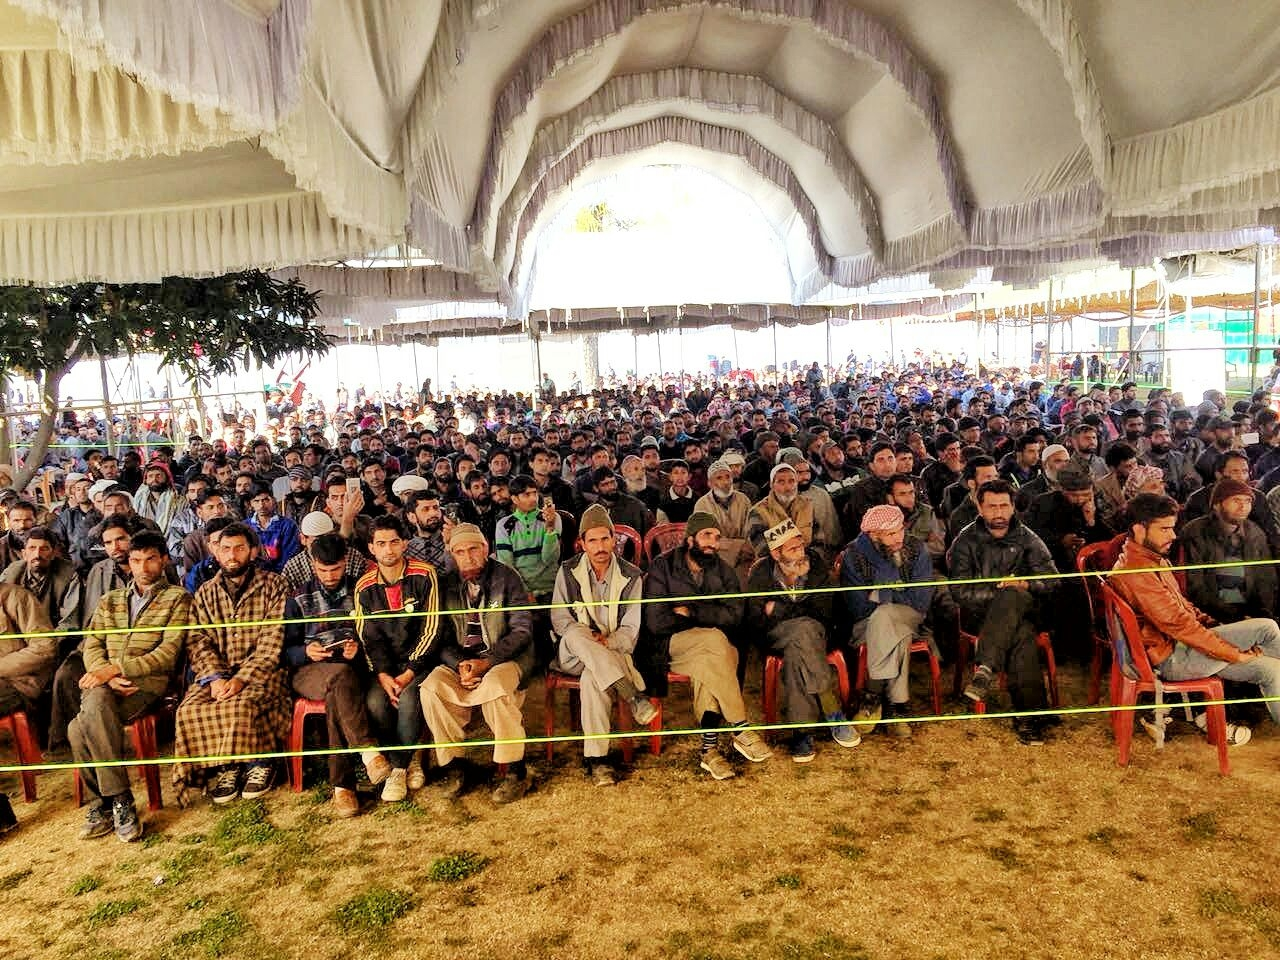 A lot for former militants and stone pelters also attended the event.